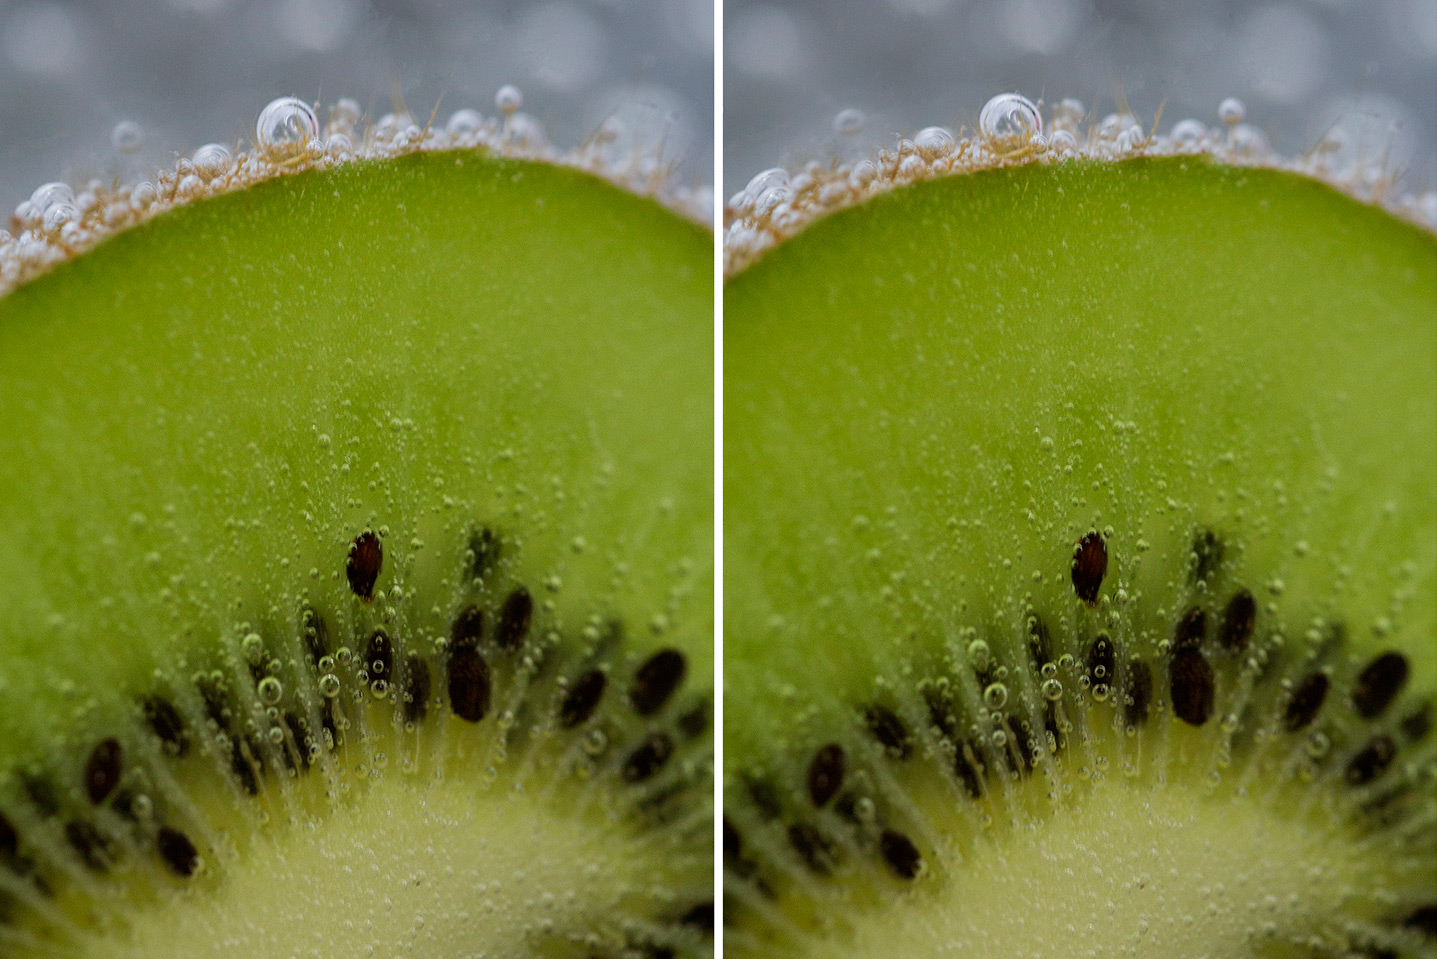 Image: The Liquify Tool used to reshape a piece of fruit.